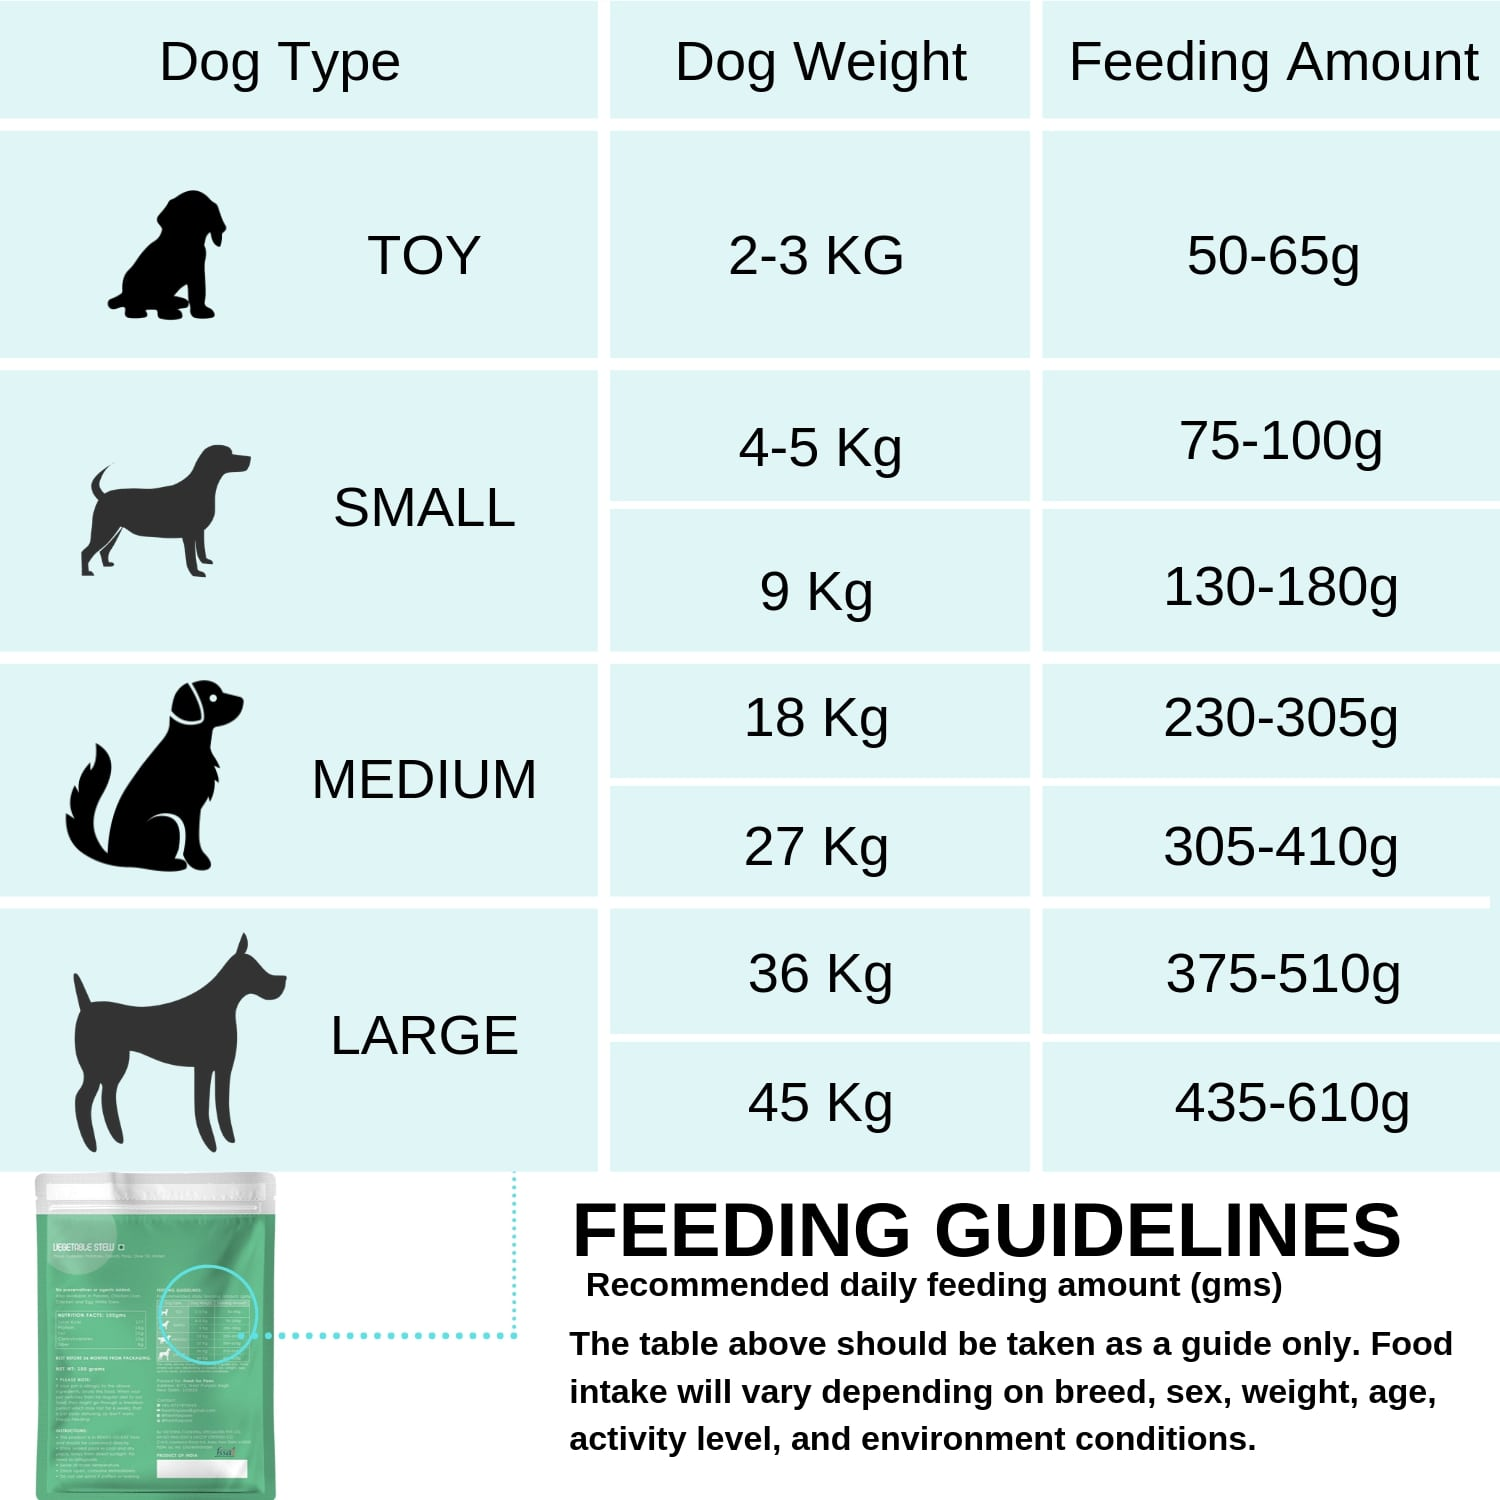 Fresh for Paws Vegetable Stew Dog Food Feeding Guide